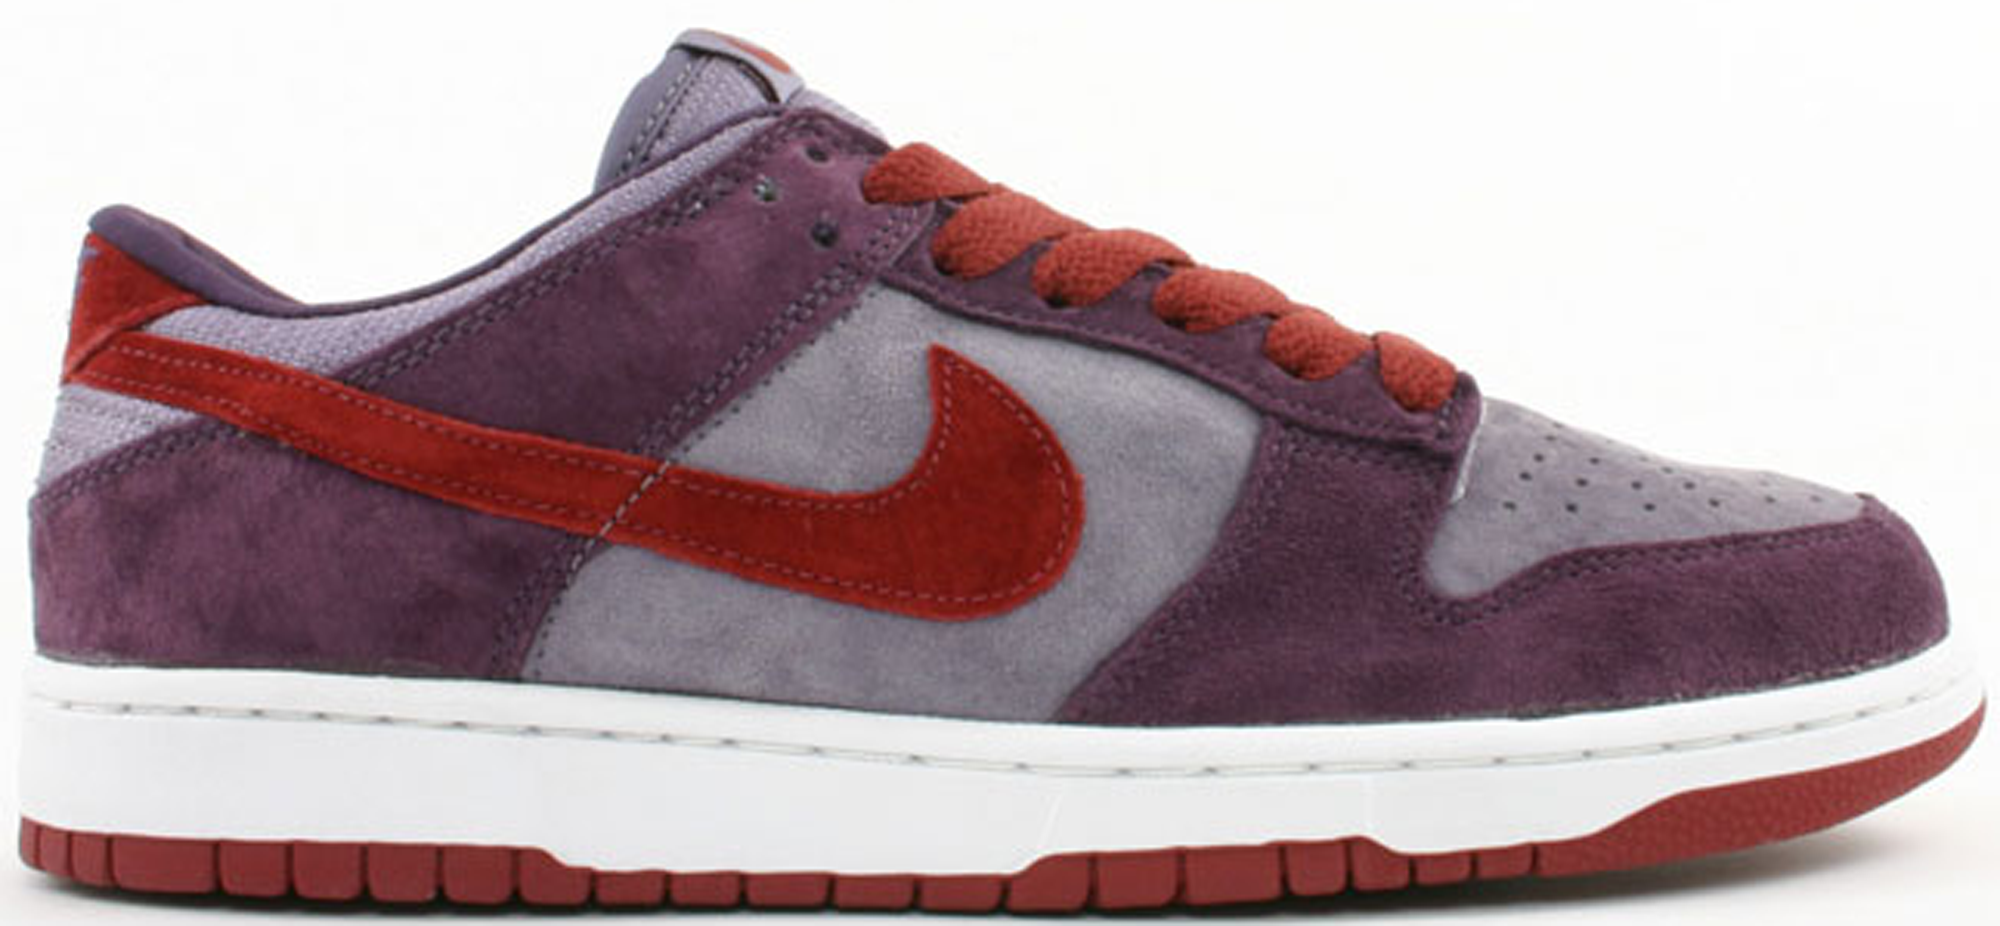 Pre-Owned Nike Dunk Low Ugly Duckling